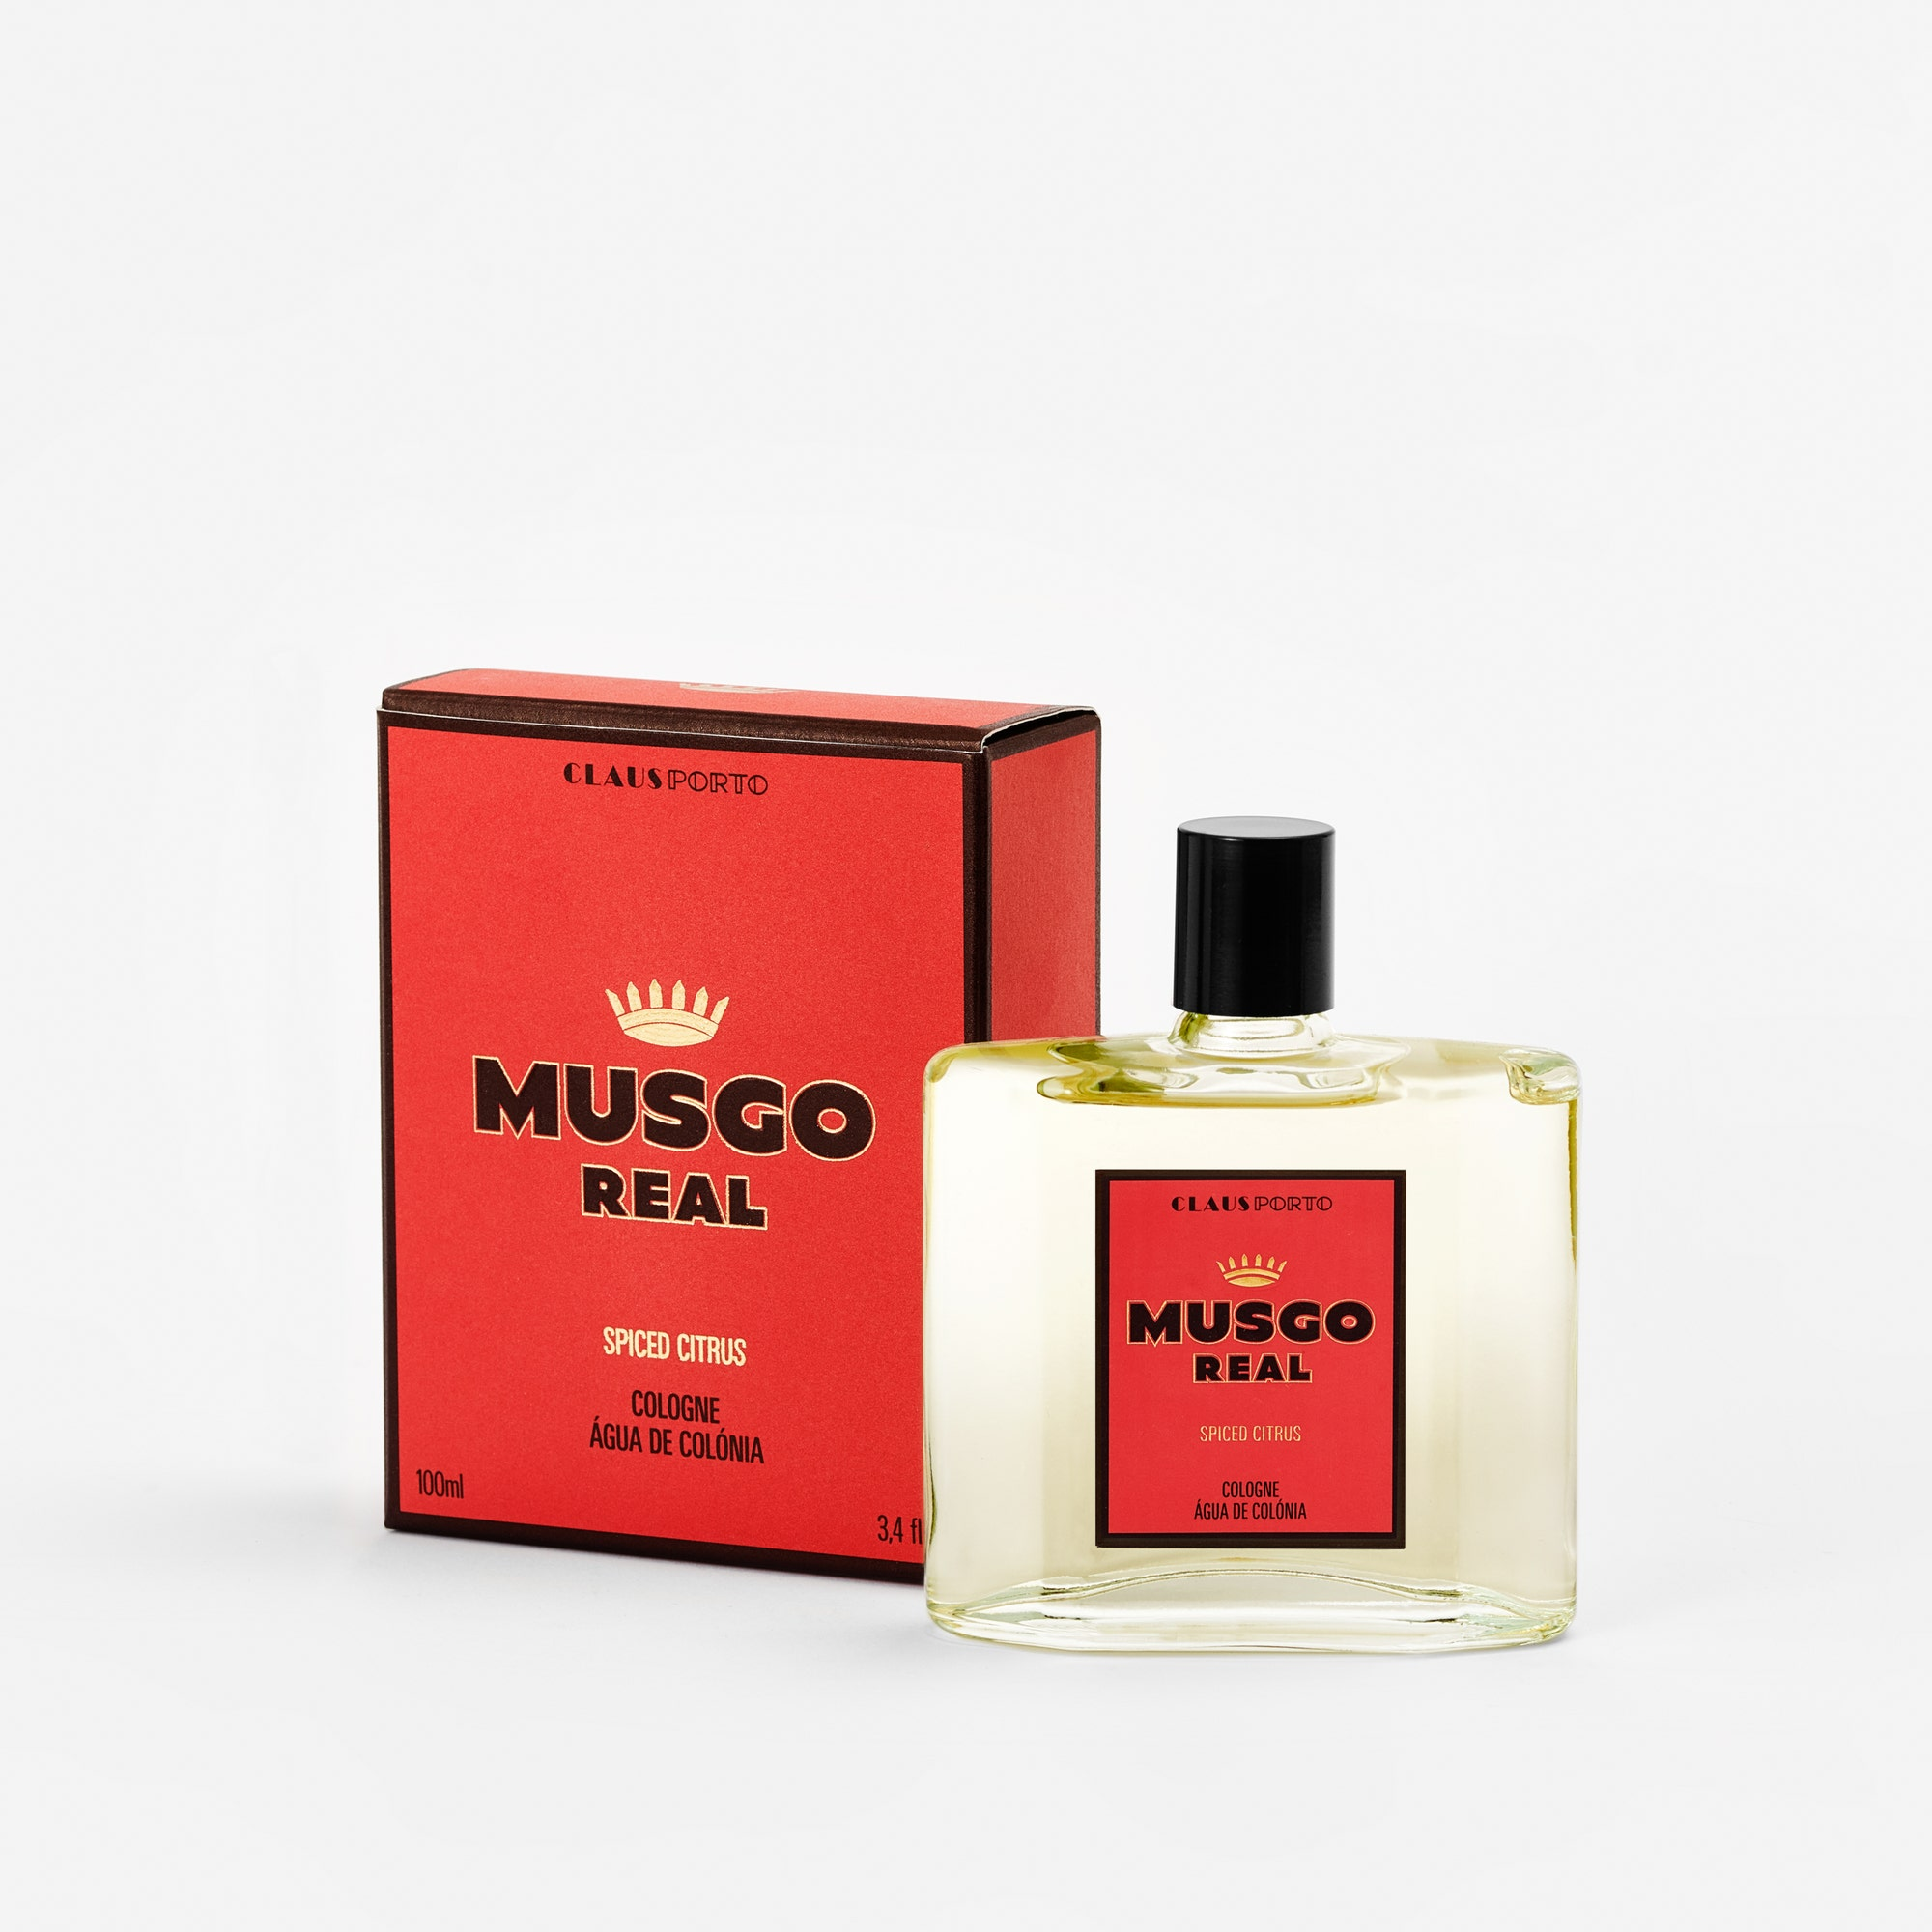 Musgo Real Cologne - Spiced Citrus - 100ml